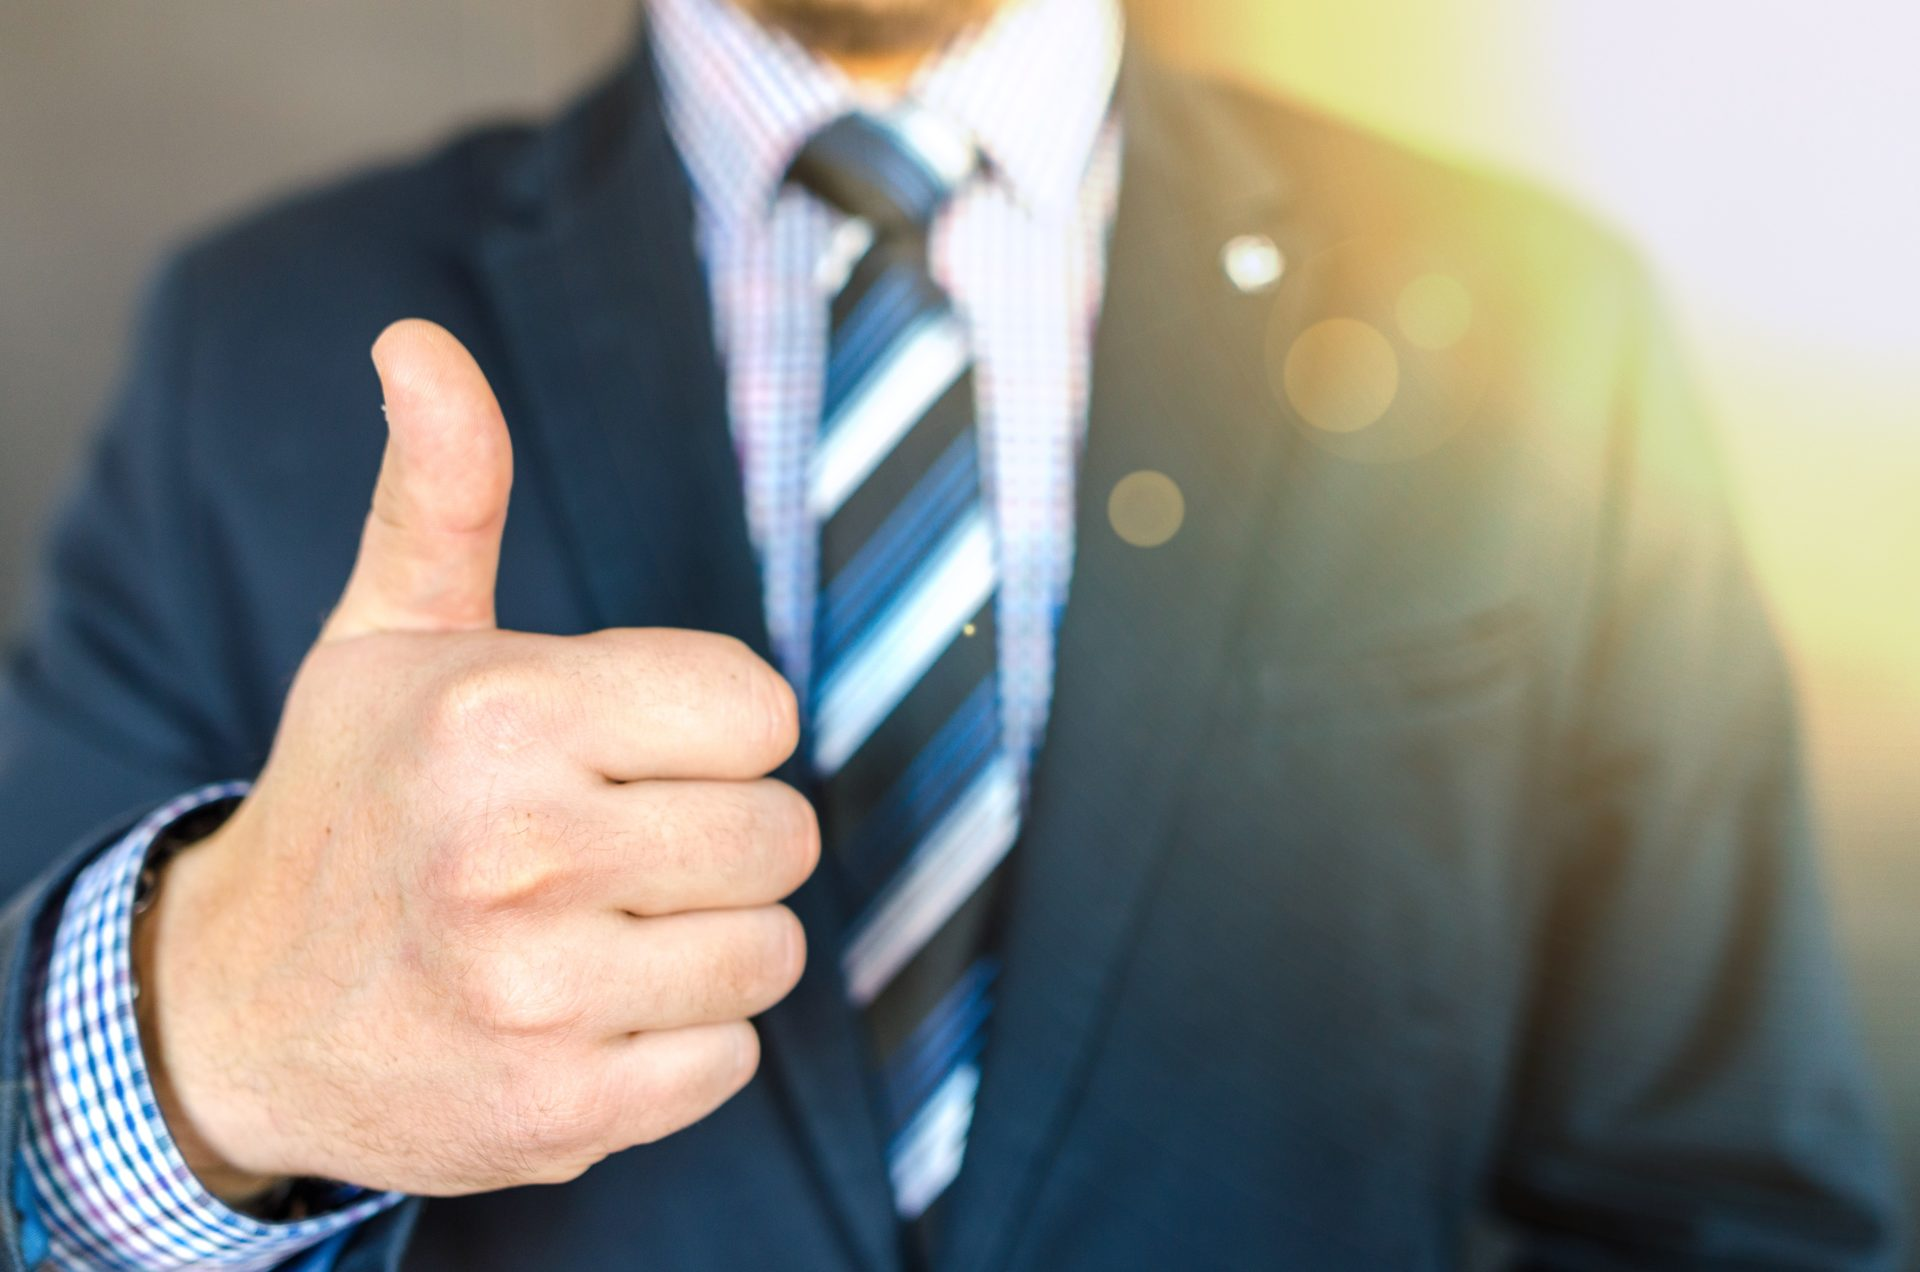 Man in suit giving thumbs up